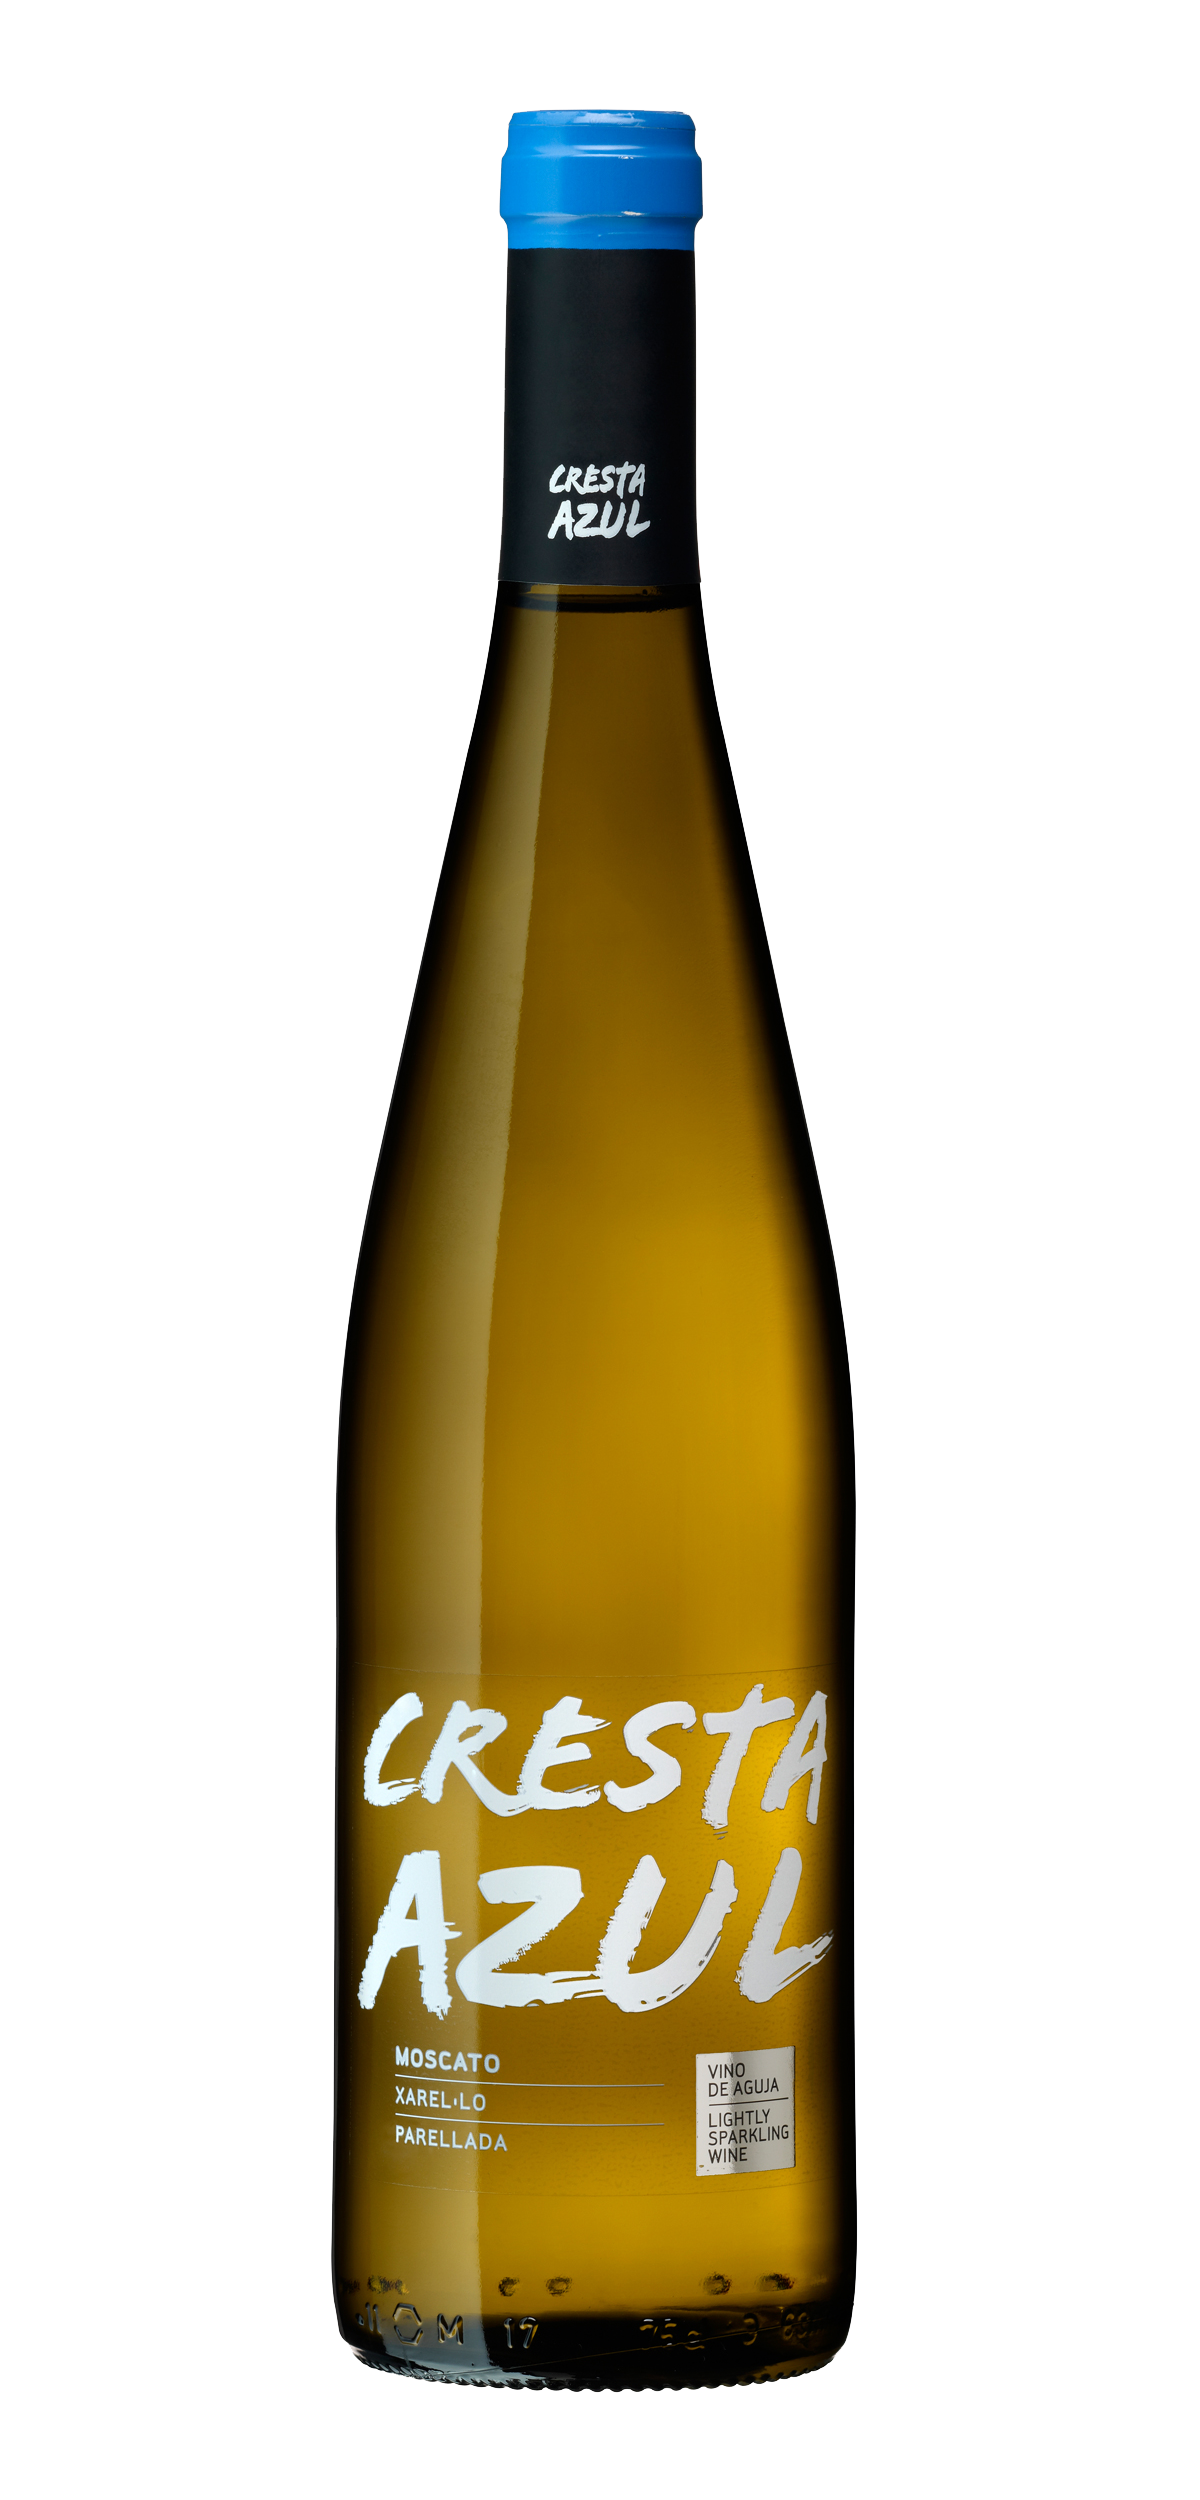 Cresta Azul wine bottle design